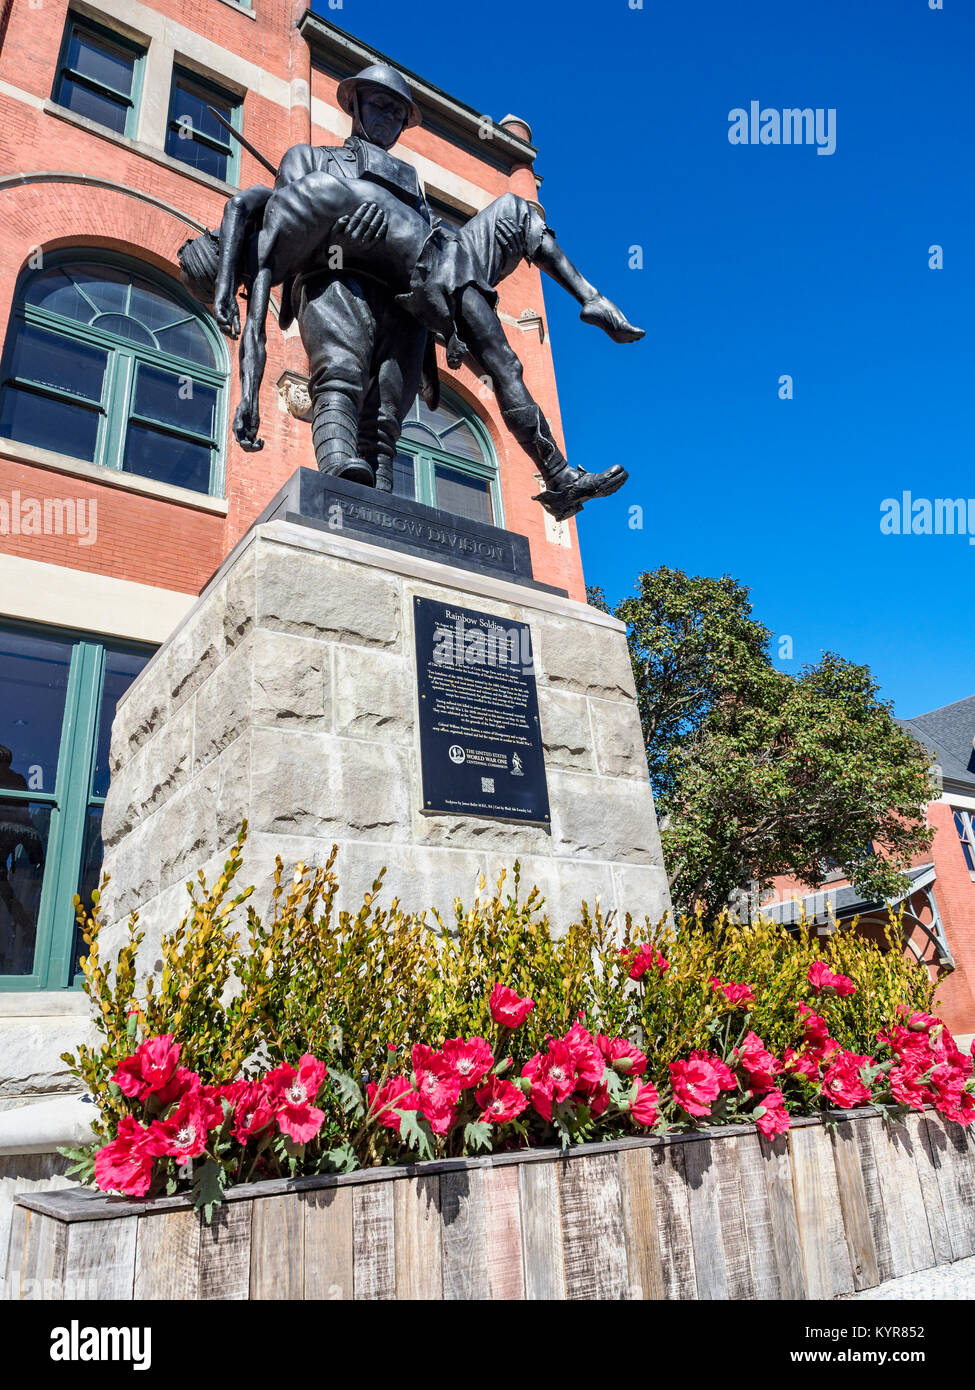 WWI memorial sculpture by James Butler commemorating the 167th US Infantry Regiment of the Rainbow Division at Union - Stock Image